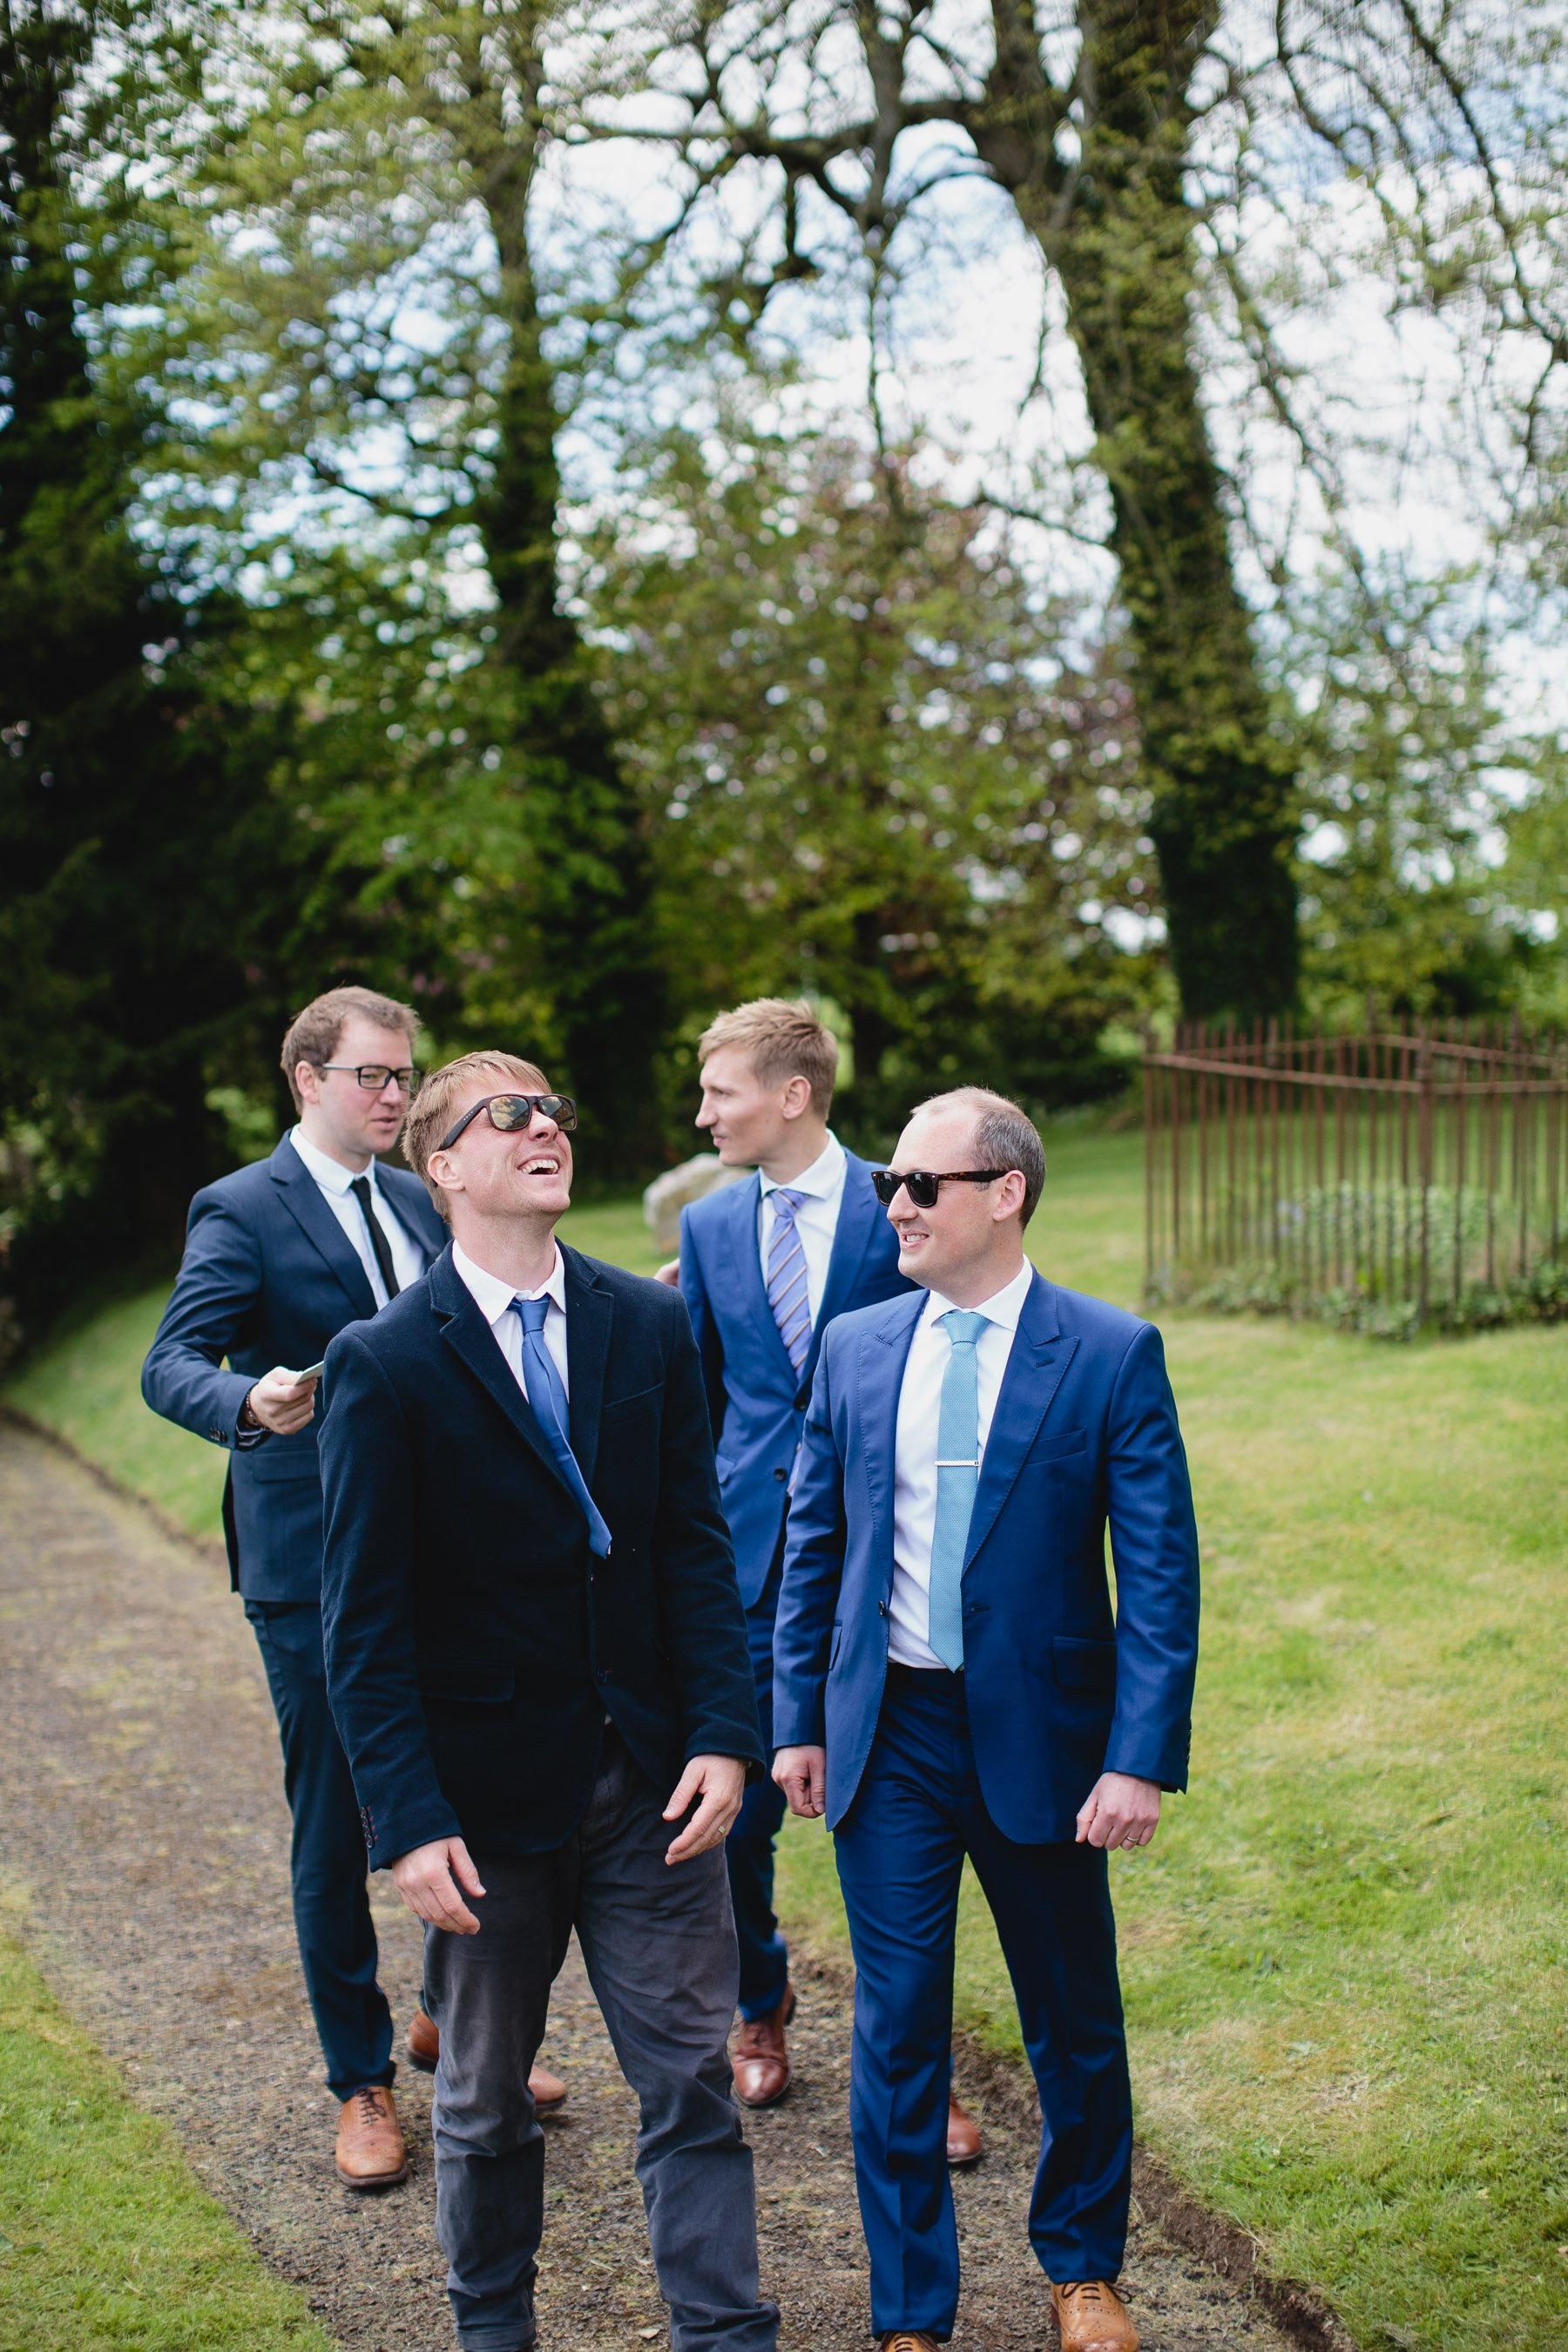 Buckinghamshire-Wedding-Lizzie-Duncan-053